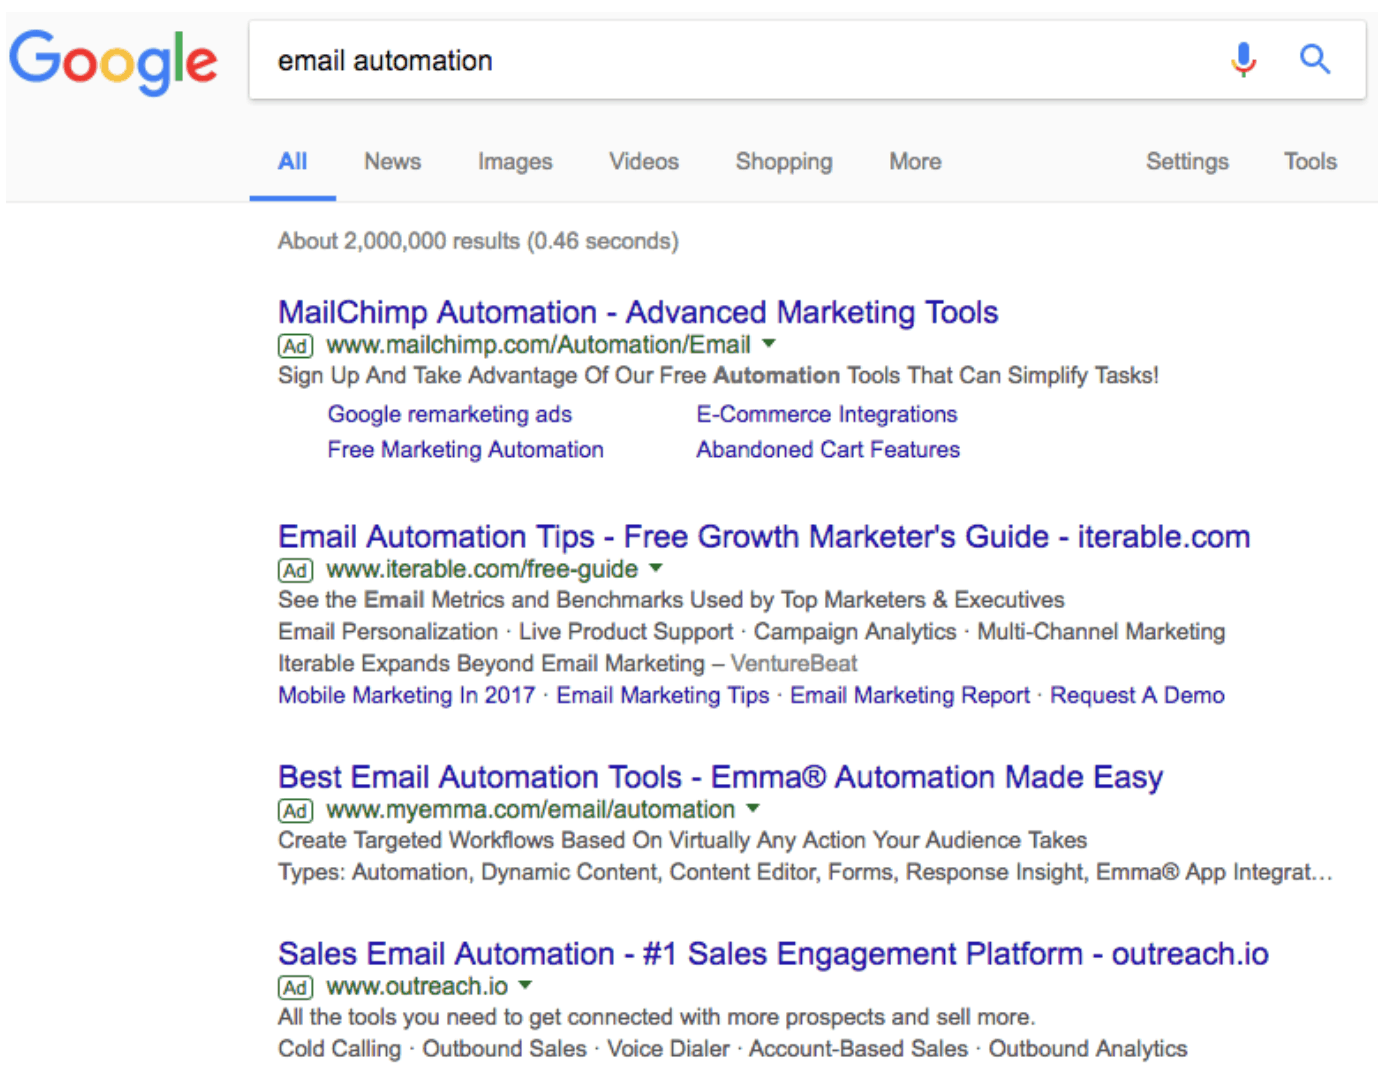 A Google SERP for the query email automation to explore marketing ideas.